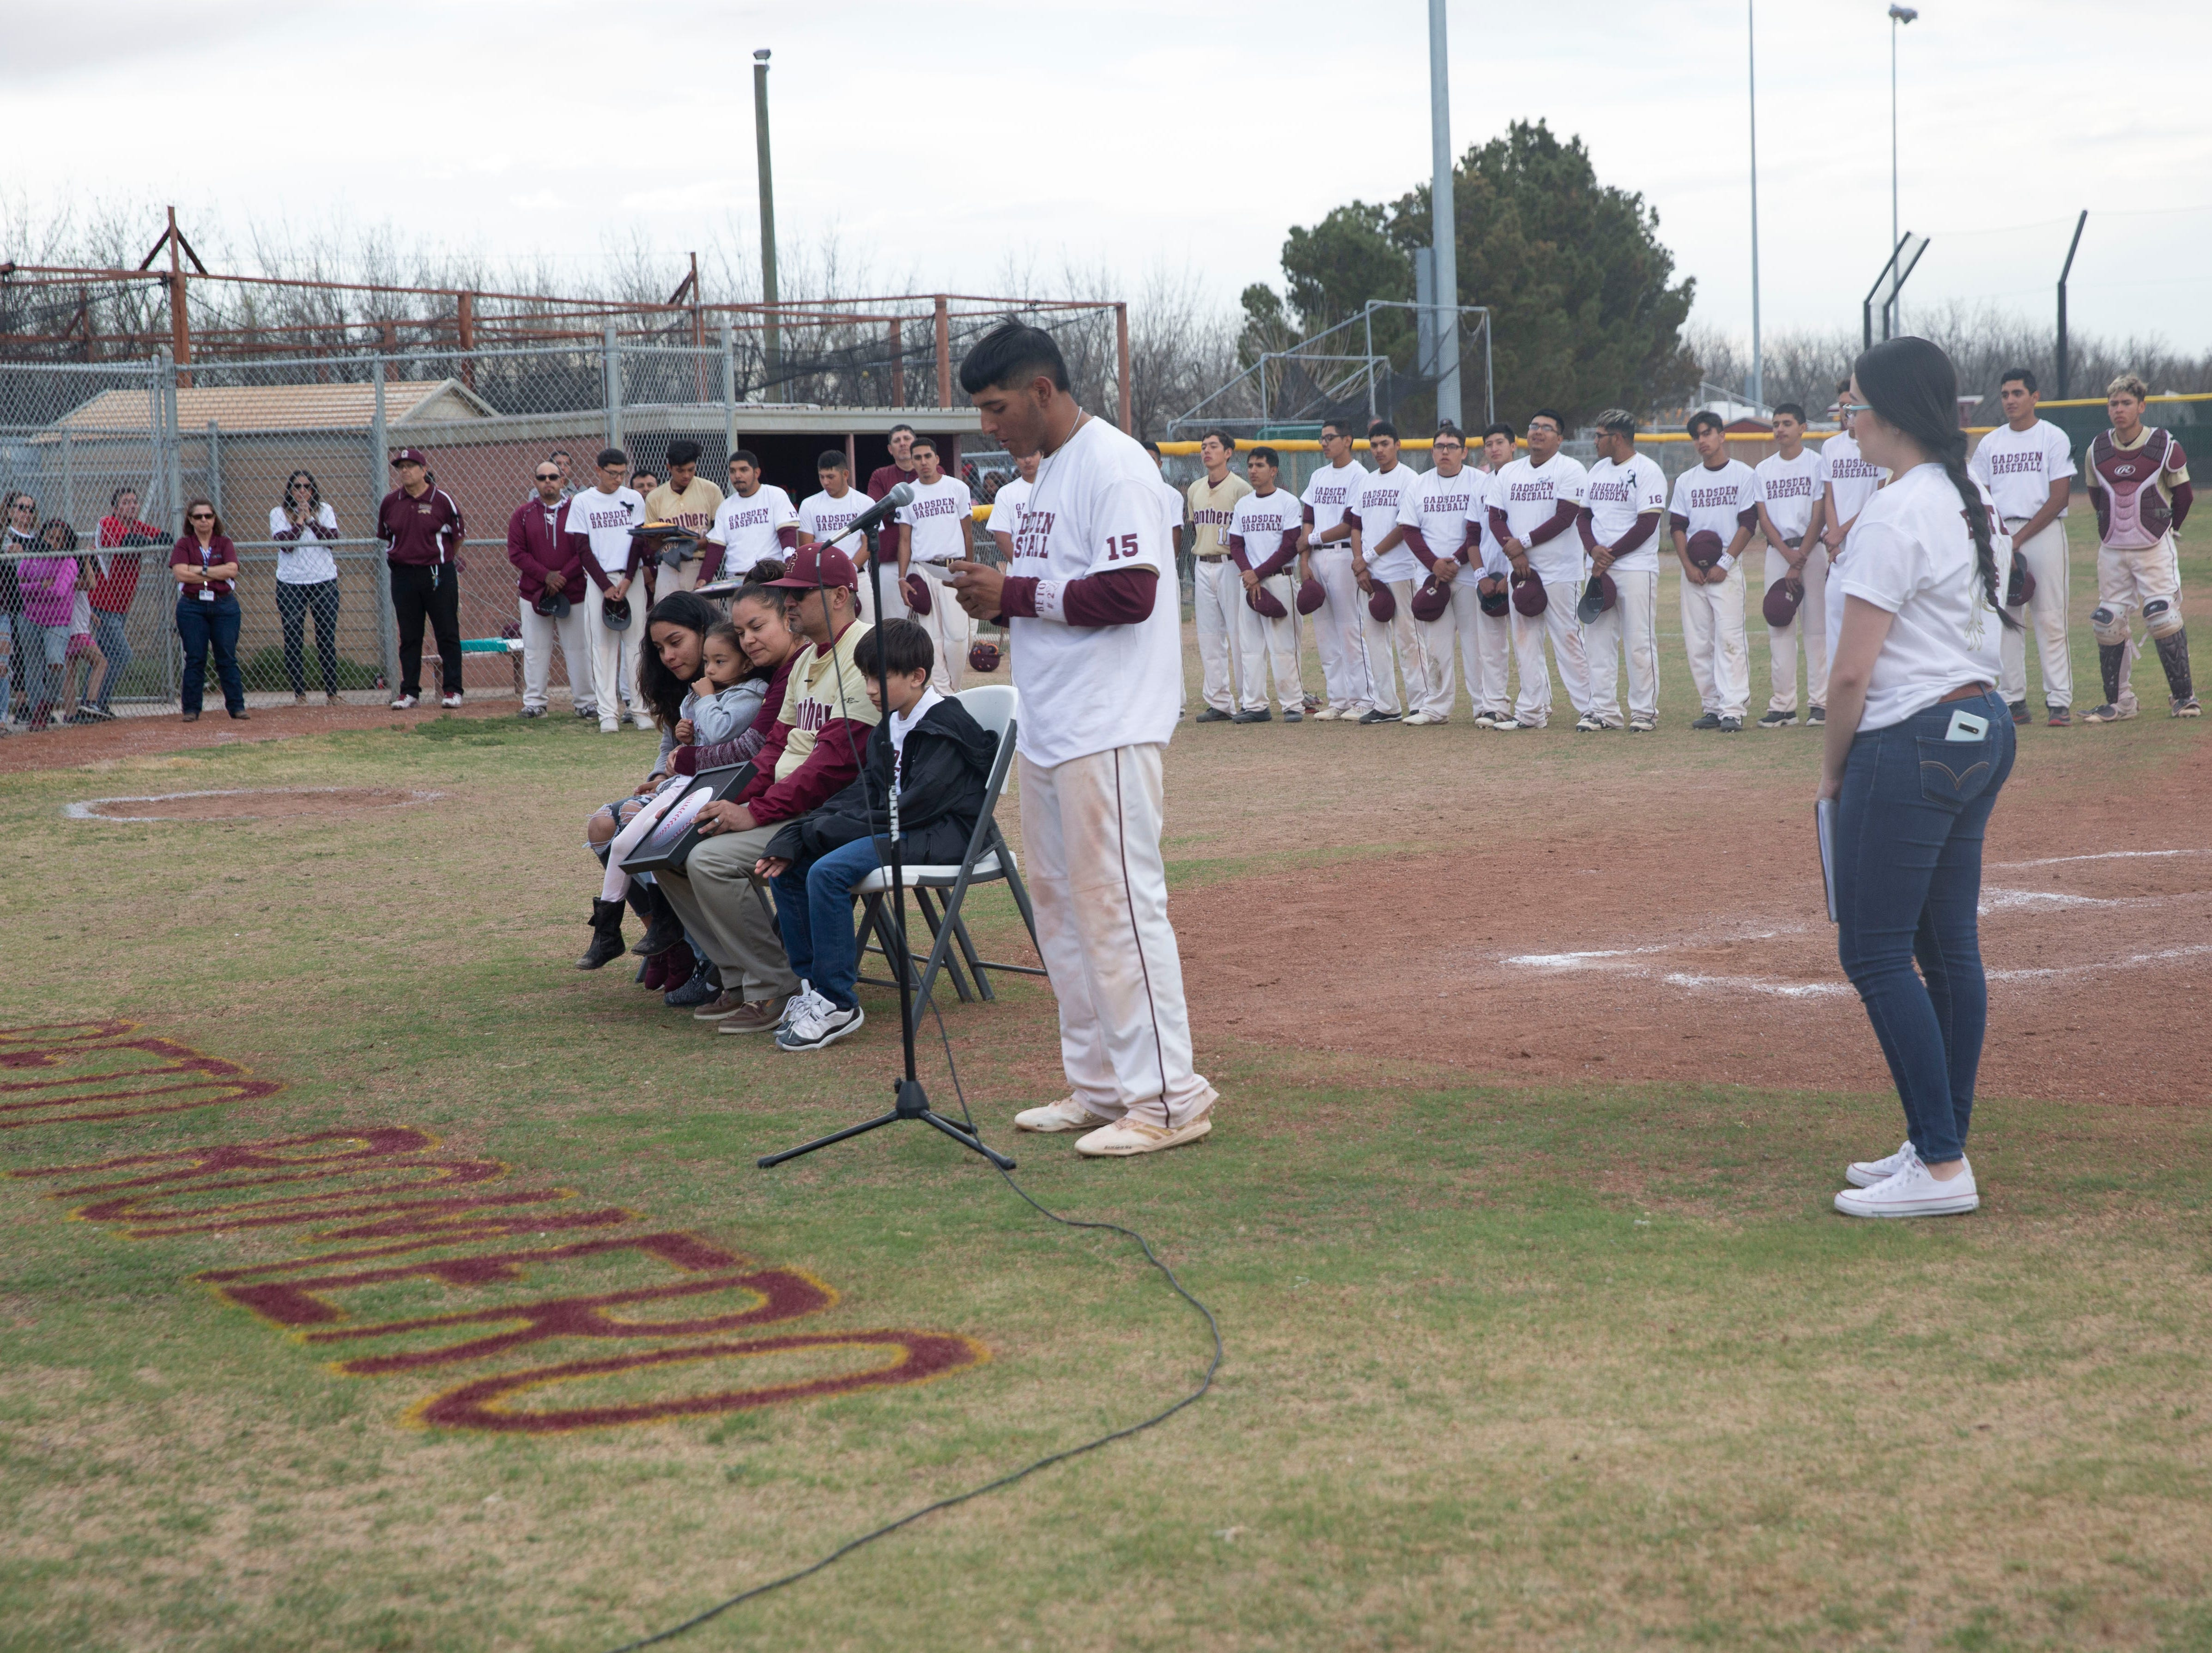 Friends, classmates and supporters of the Beto Romero family gathered Friday evening April, 5, at a Gadsden High School double-header baseball game, to honor their fallen teammate, who was killed by an erratic driver earlier this week, in Anthony, New Mexico. Romero was just 16-years old.